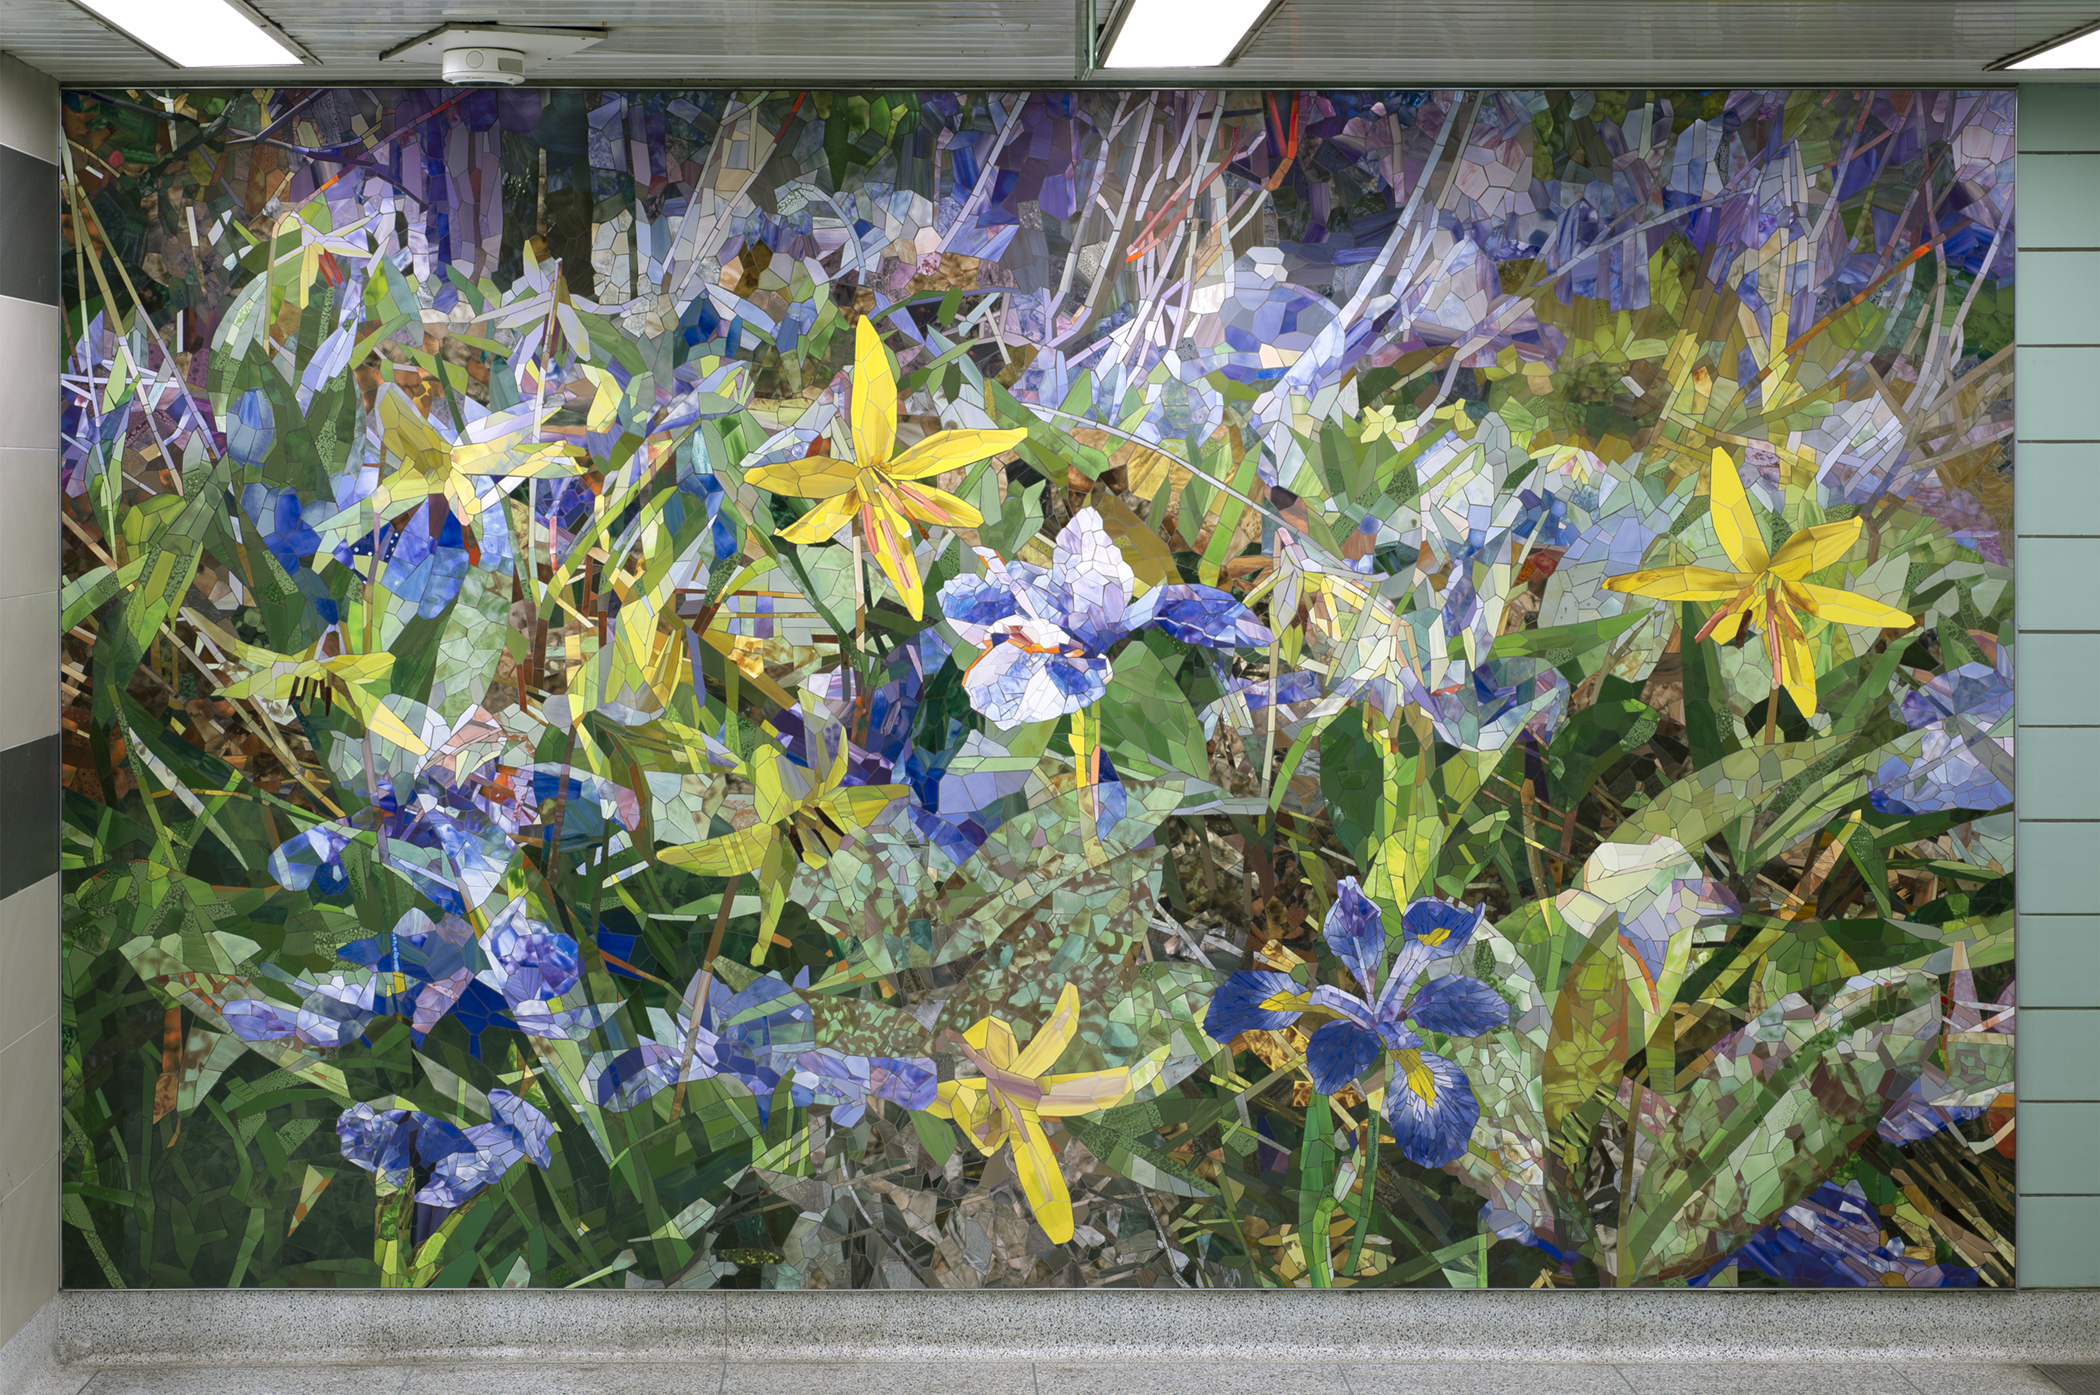 Trout Lily Blue Flag Iris 2020 ceramic mosaic 8x14ft (Chester subway, Toronto) commissioned by the TTC by Contemporary Canadian Artist Katharine Harvey